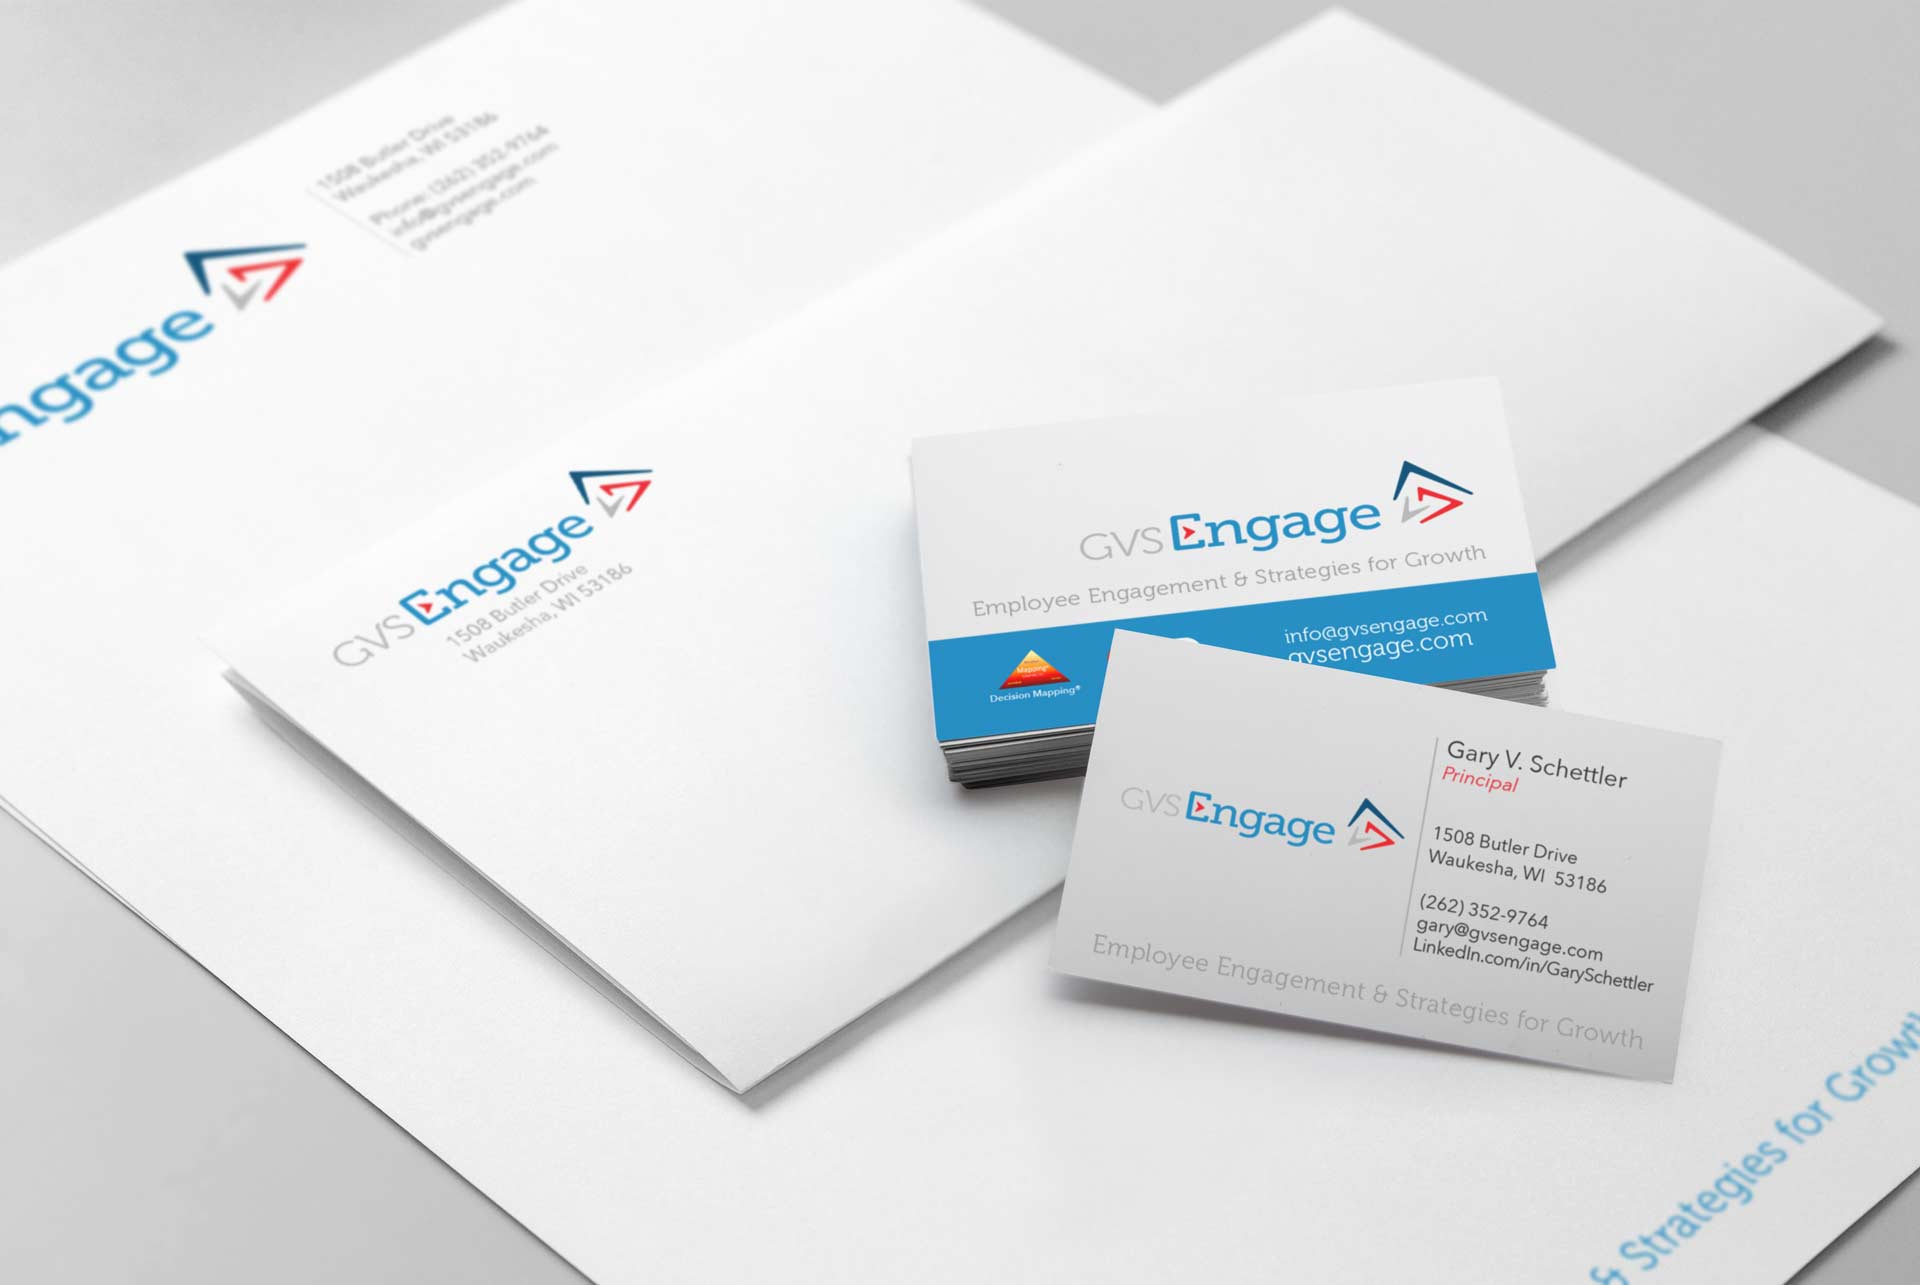 NAVEO Marketing develops marketing collateral ideas for GVS including ENGAGE-themed stationary.